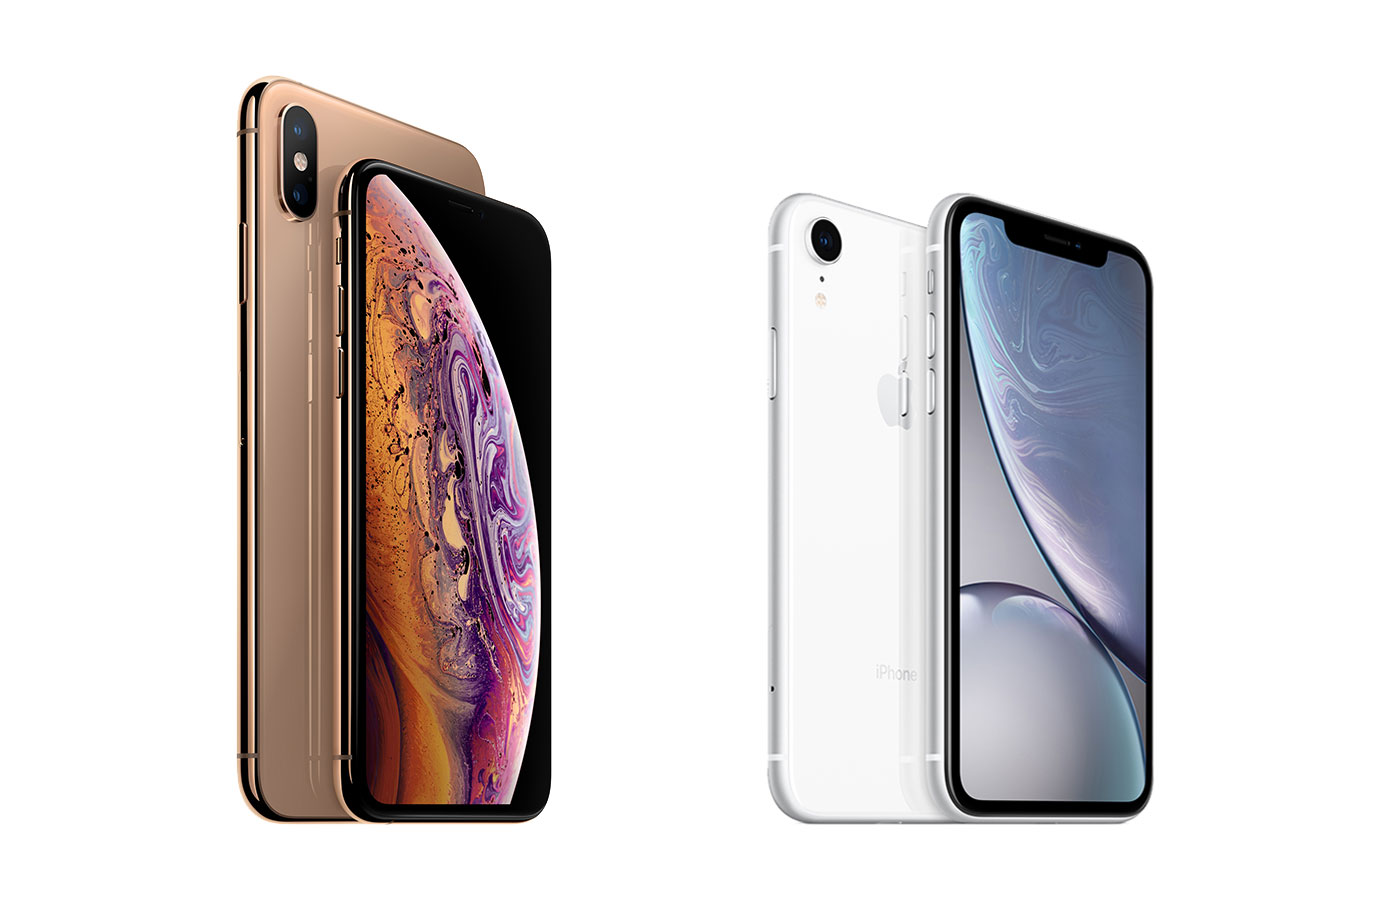 Image Source: Apple, via Engadget: https://www.engadget.com/2018/09/12/apple-iphone-xs-xs-max-xr-compare/